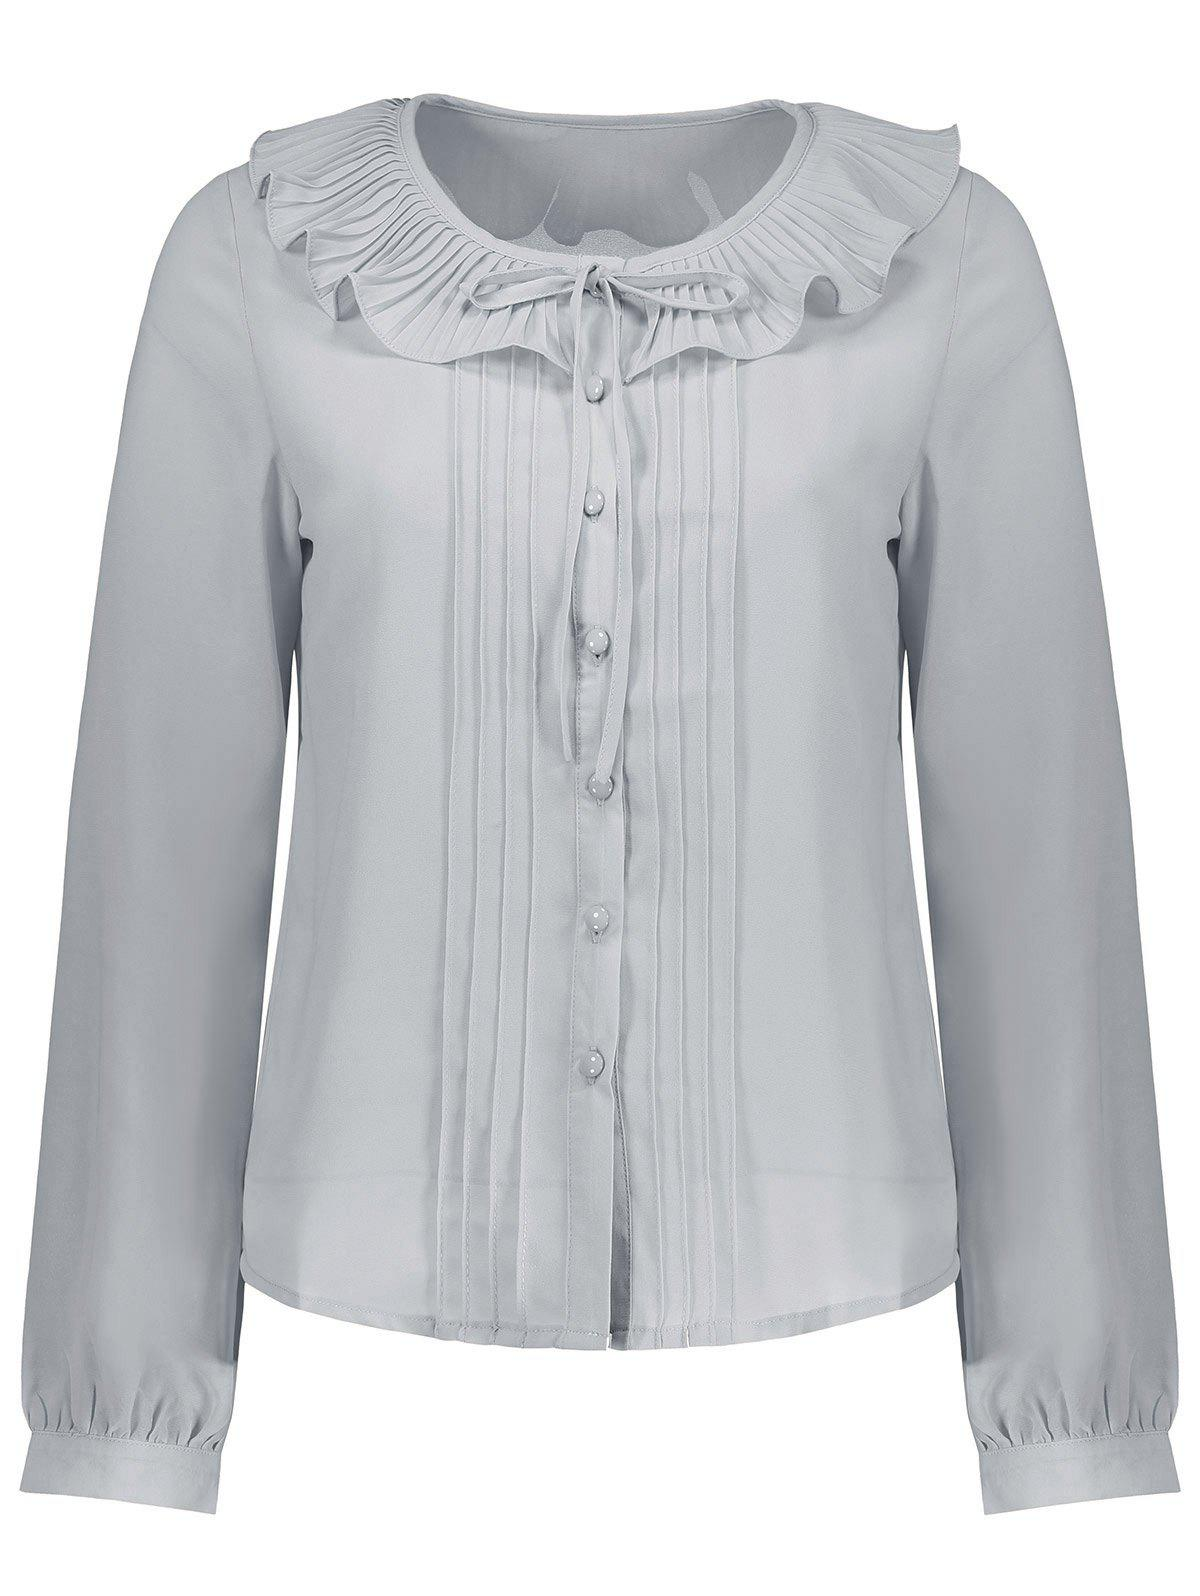 Discount Pleated Flounce Button Up Blouse